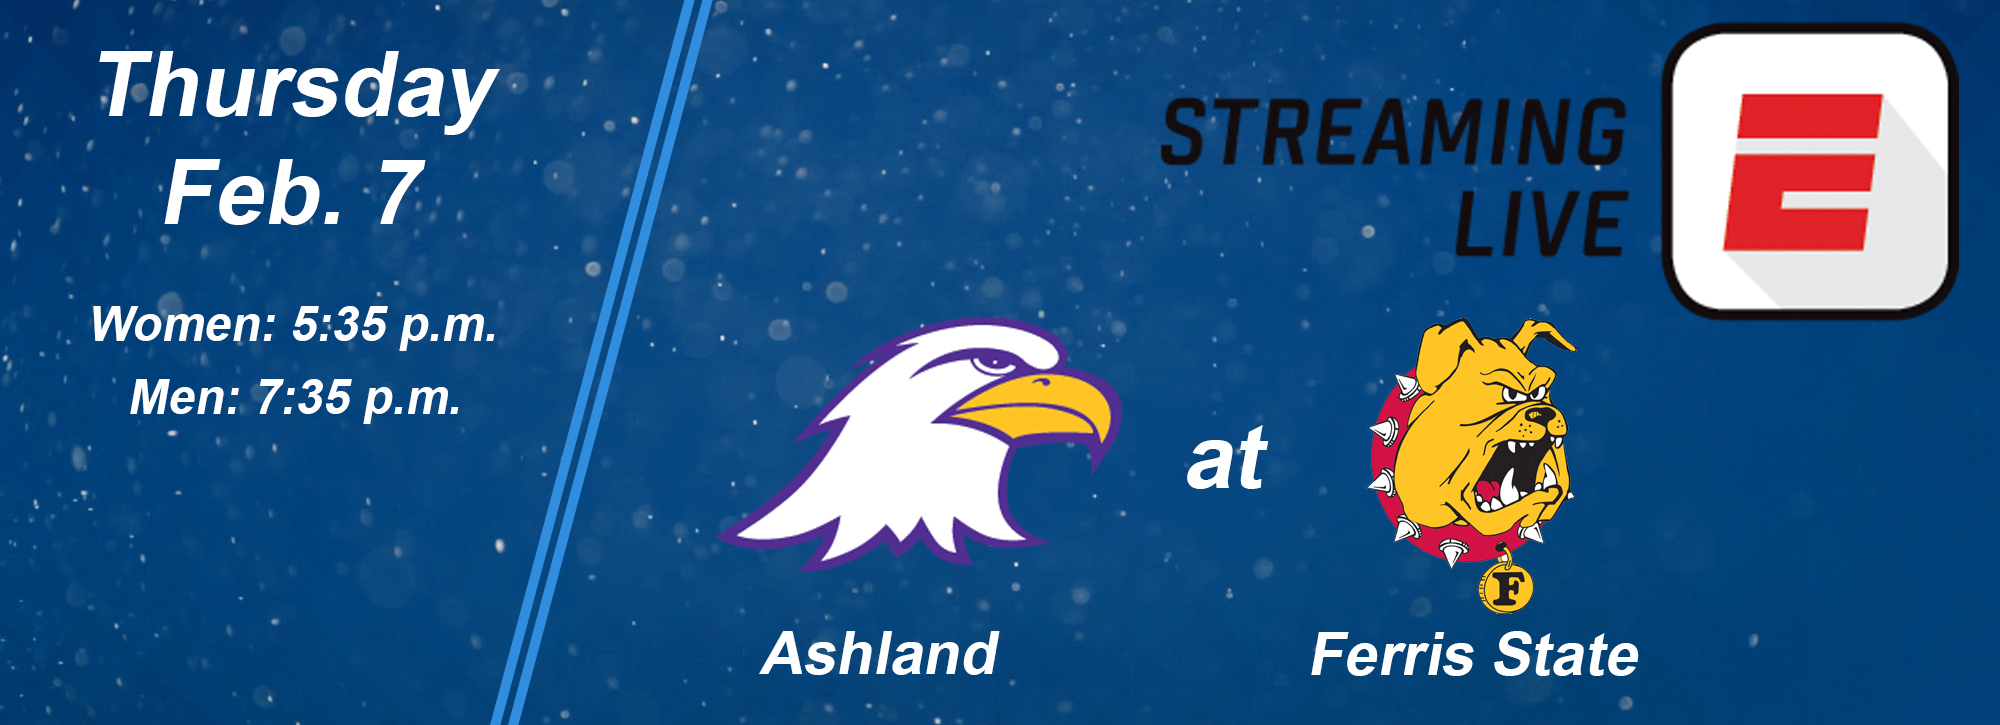 NCAA DII basketball Showcase includes Thursday's Ashland at Ferris contests